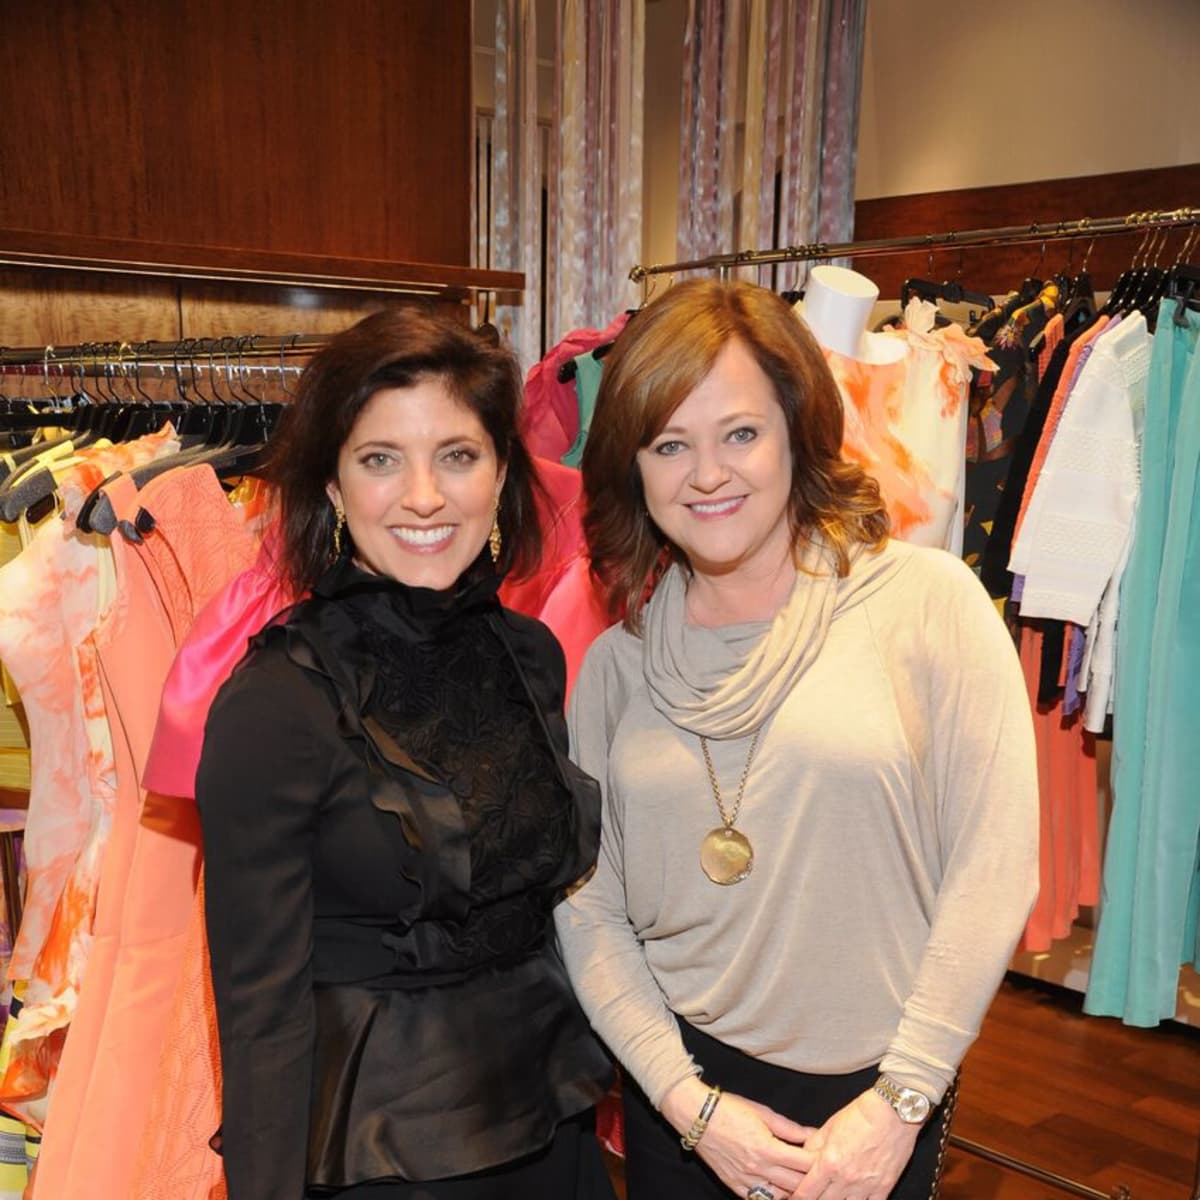 Stacey Lindseth, Diane Kiecke at Passion for Fashion party at Elizabeth Anthony